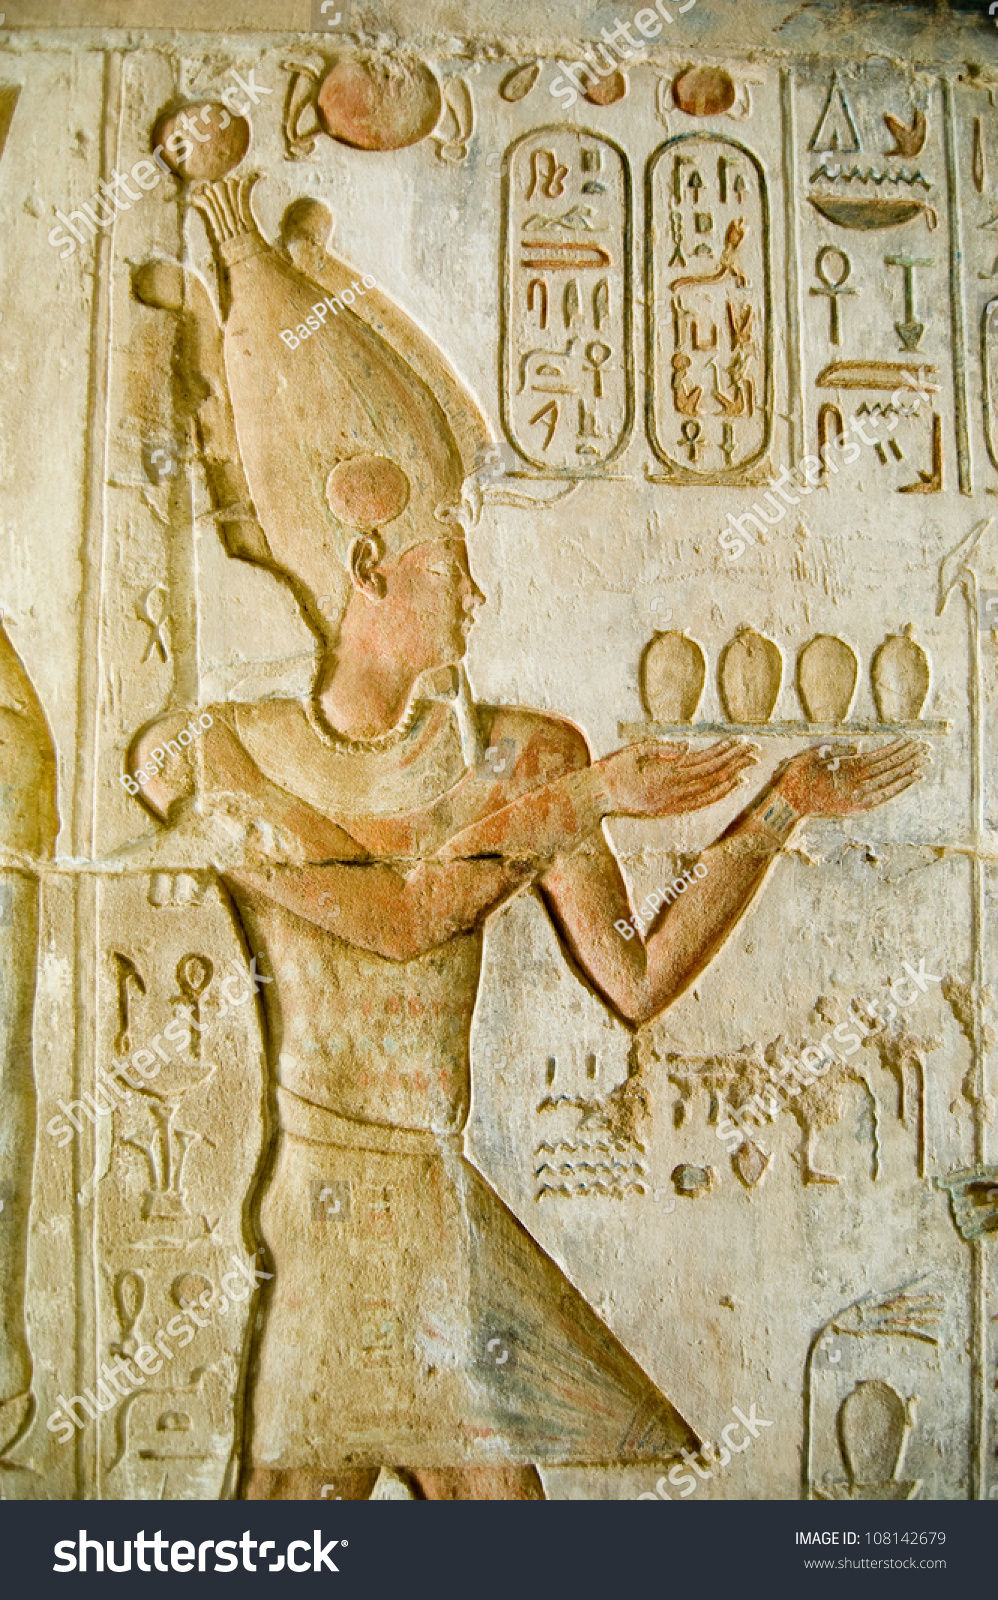 Pittura Parietale Egizia Foto Stock A Tema Ancient Egyptian Bas Relief Carving Pharaoh